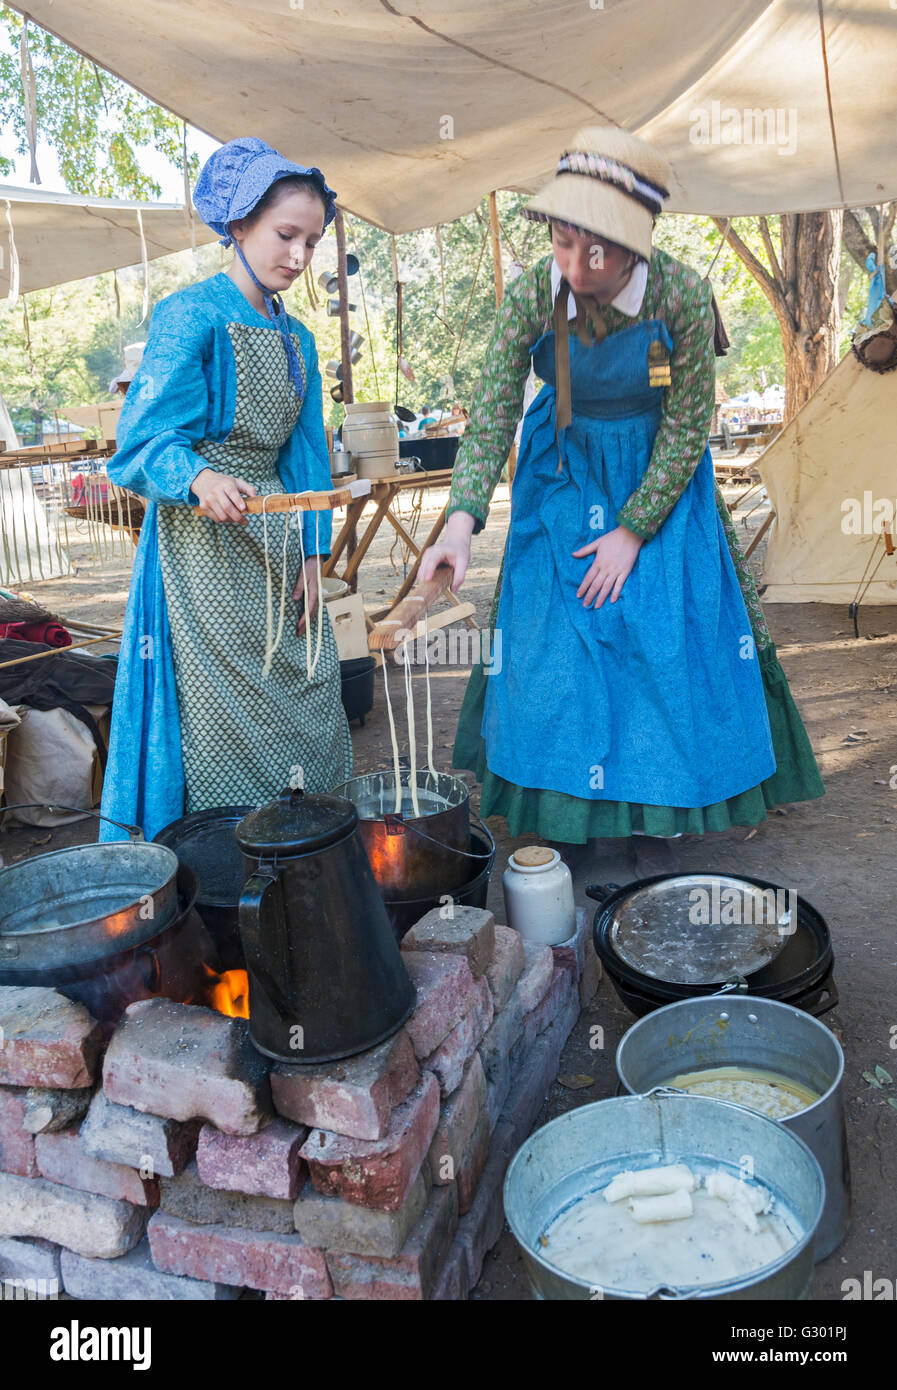 California, Coloma, Marshall Gold Discovery Historic Park, 'Gold Rush Live'  living history event, reenactor - Stock Image